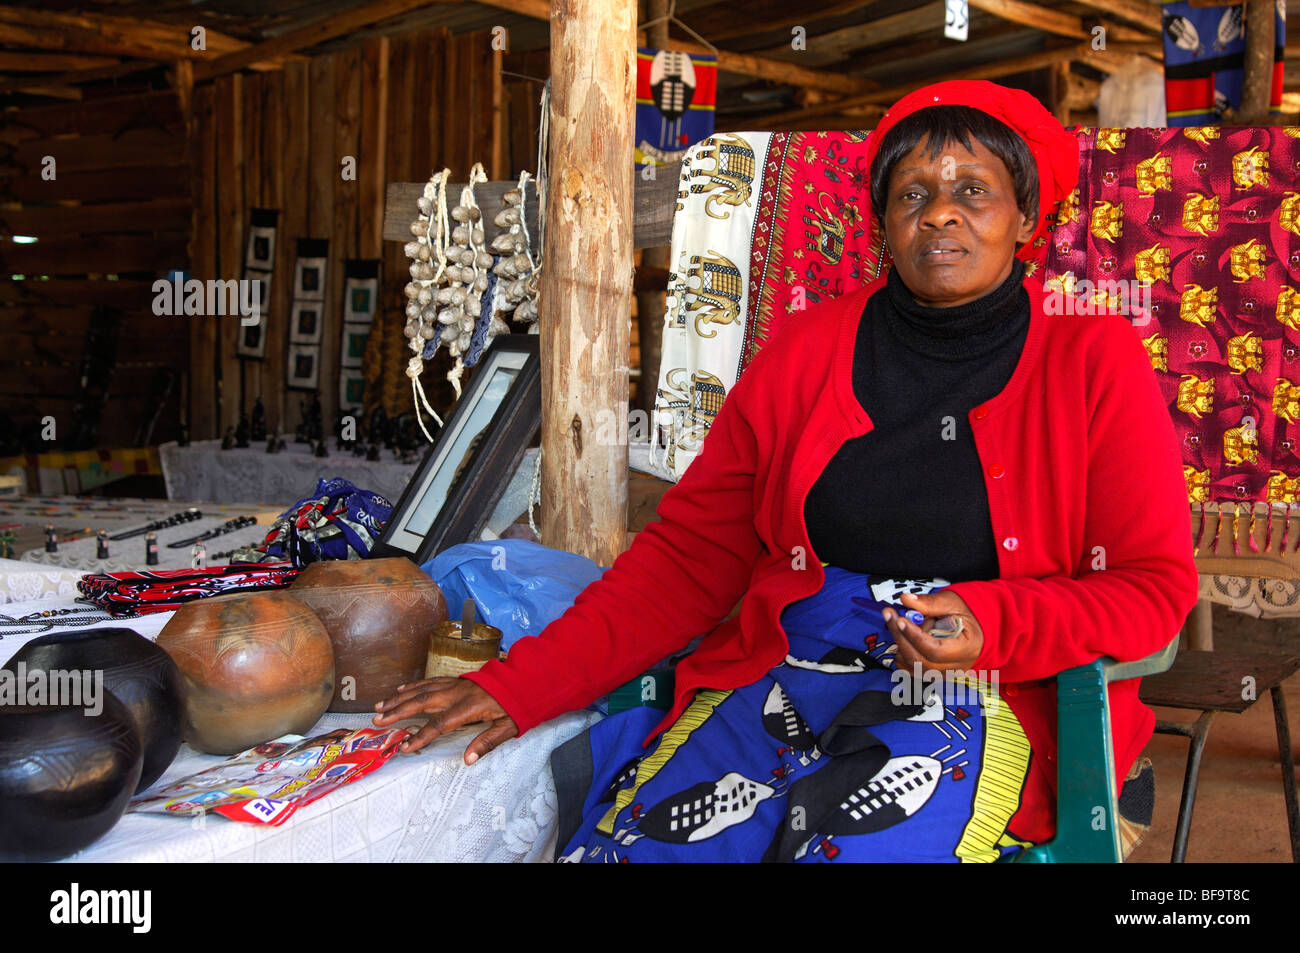 African woman sitting in her curio market stall, Ezulwini, Swaziland - Stock Image